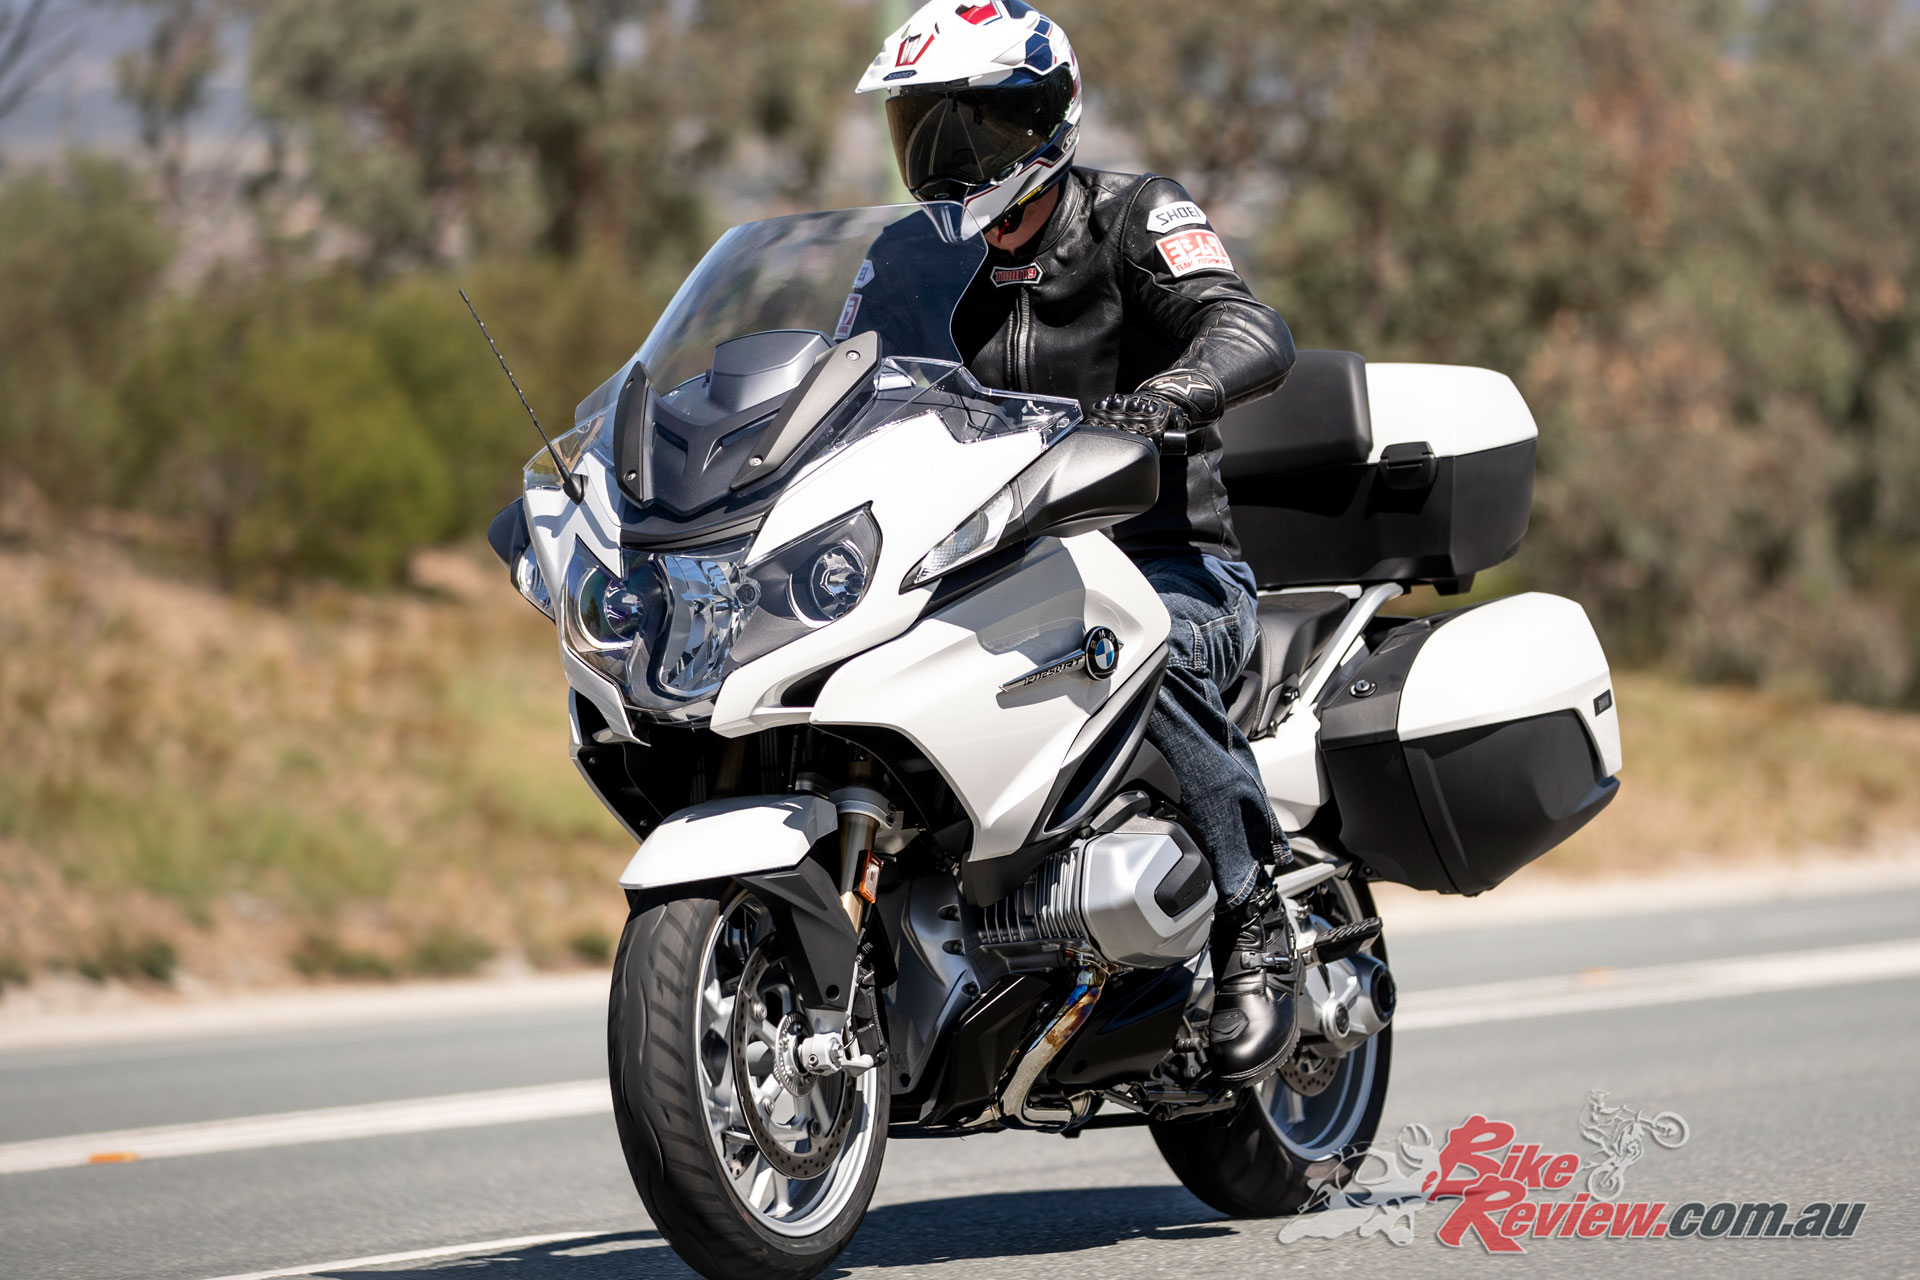 The R 1250 RT can also be fitted with the BMW Gear Shift Assistant Pro for clutchless up and down shifts